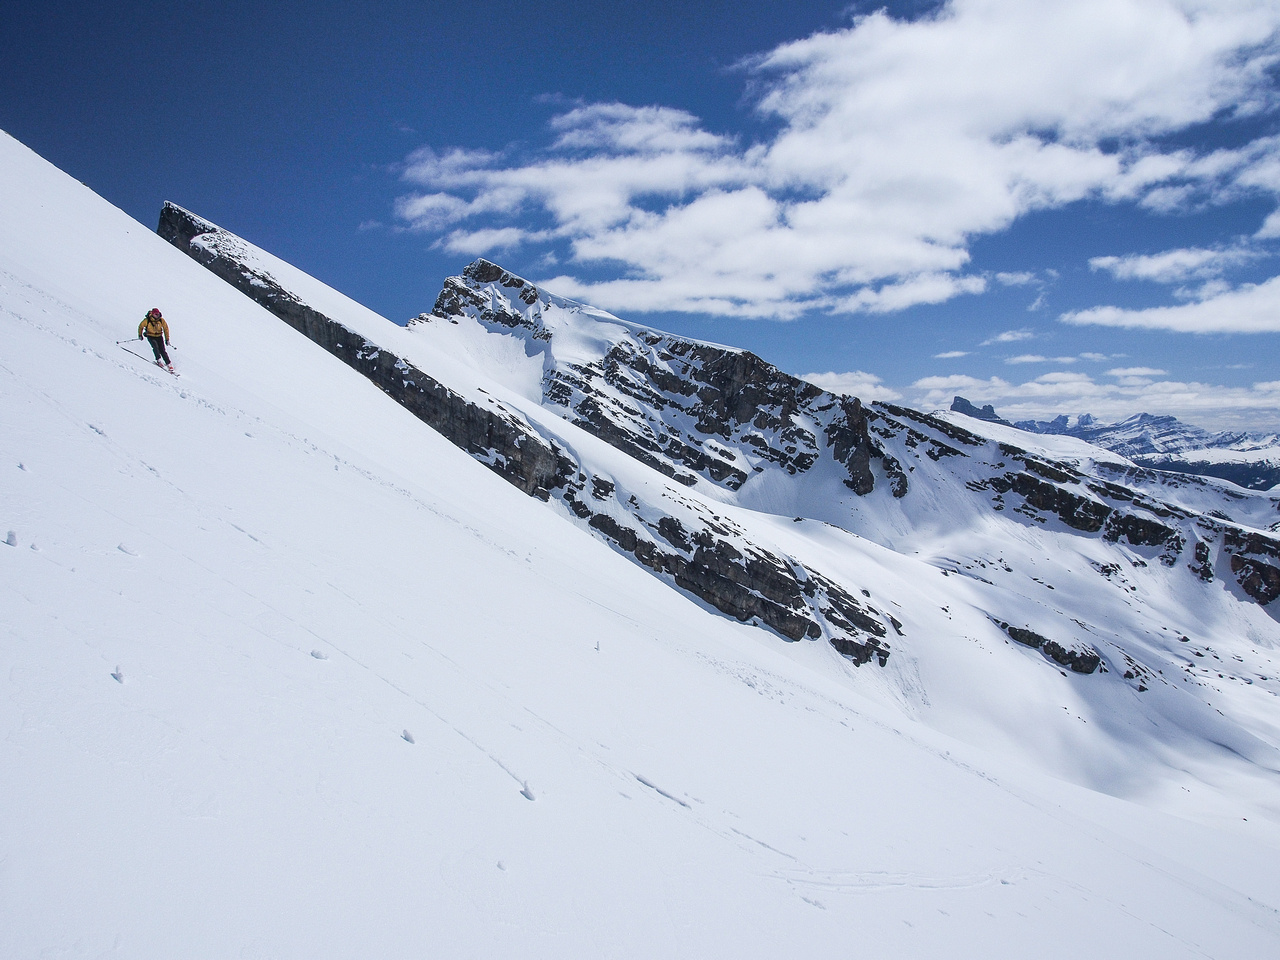 Descending Quartzite Peak.